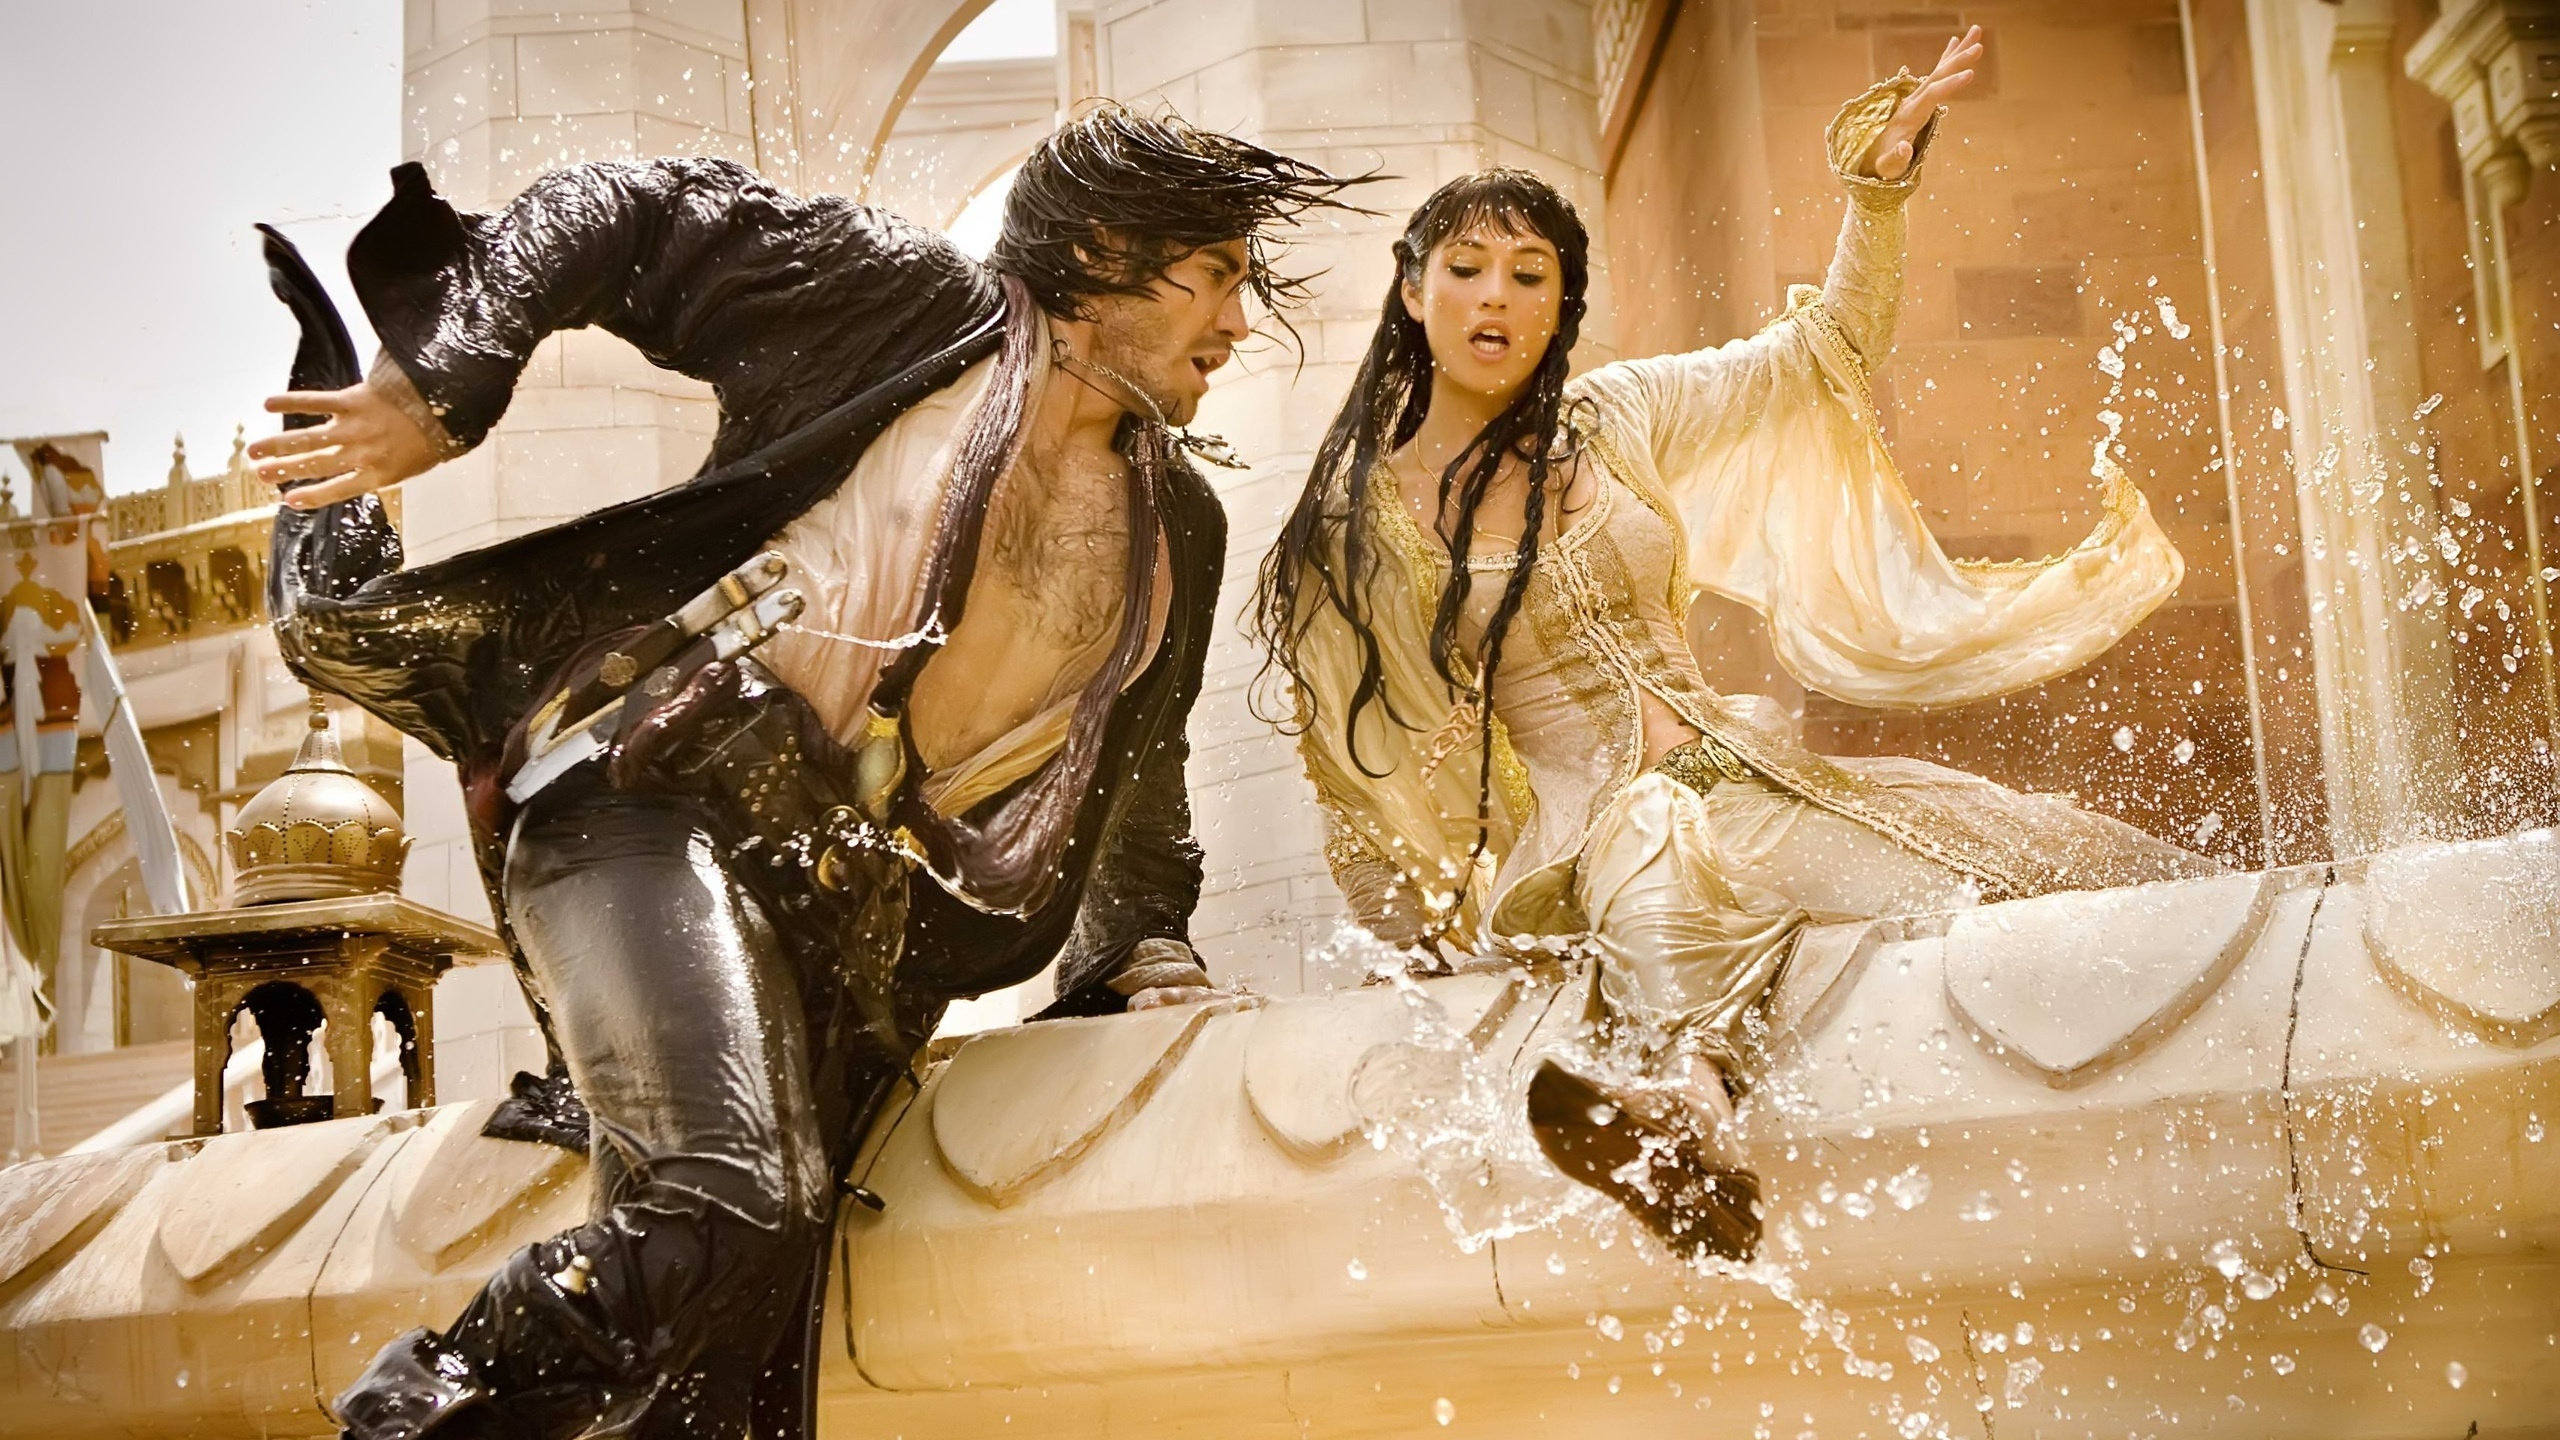 Prince Of Persia: The Sands of Time Movie for 2560x1440 HDTV resolution